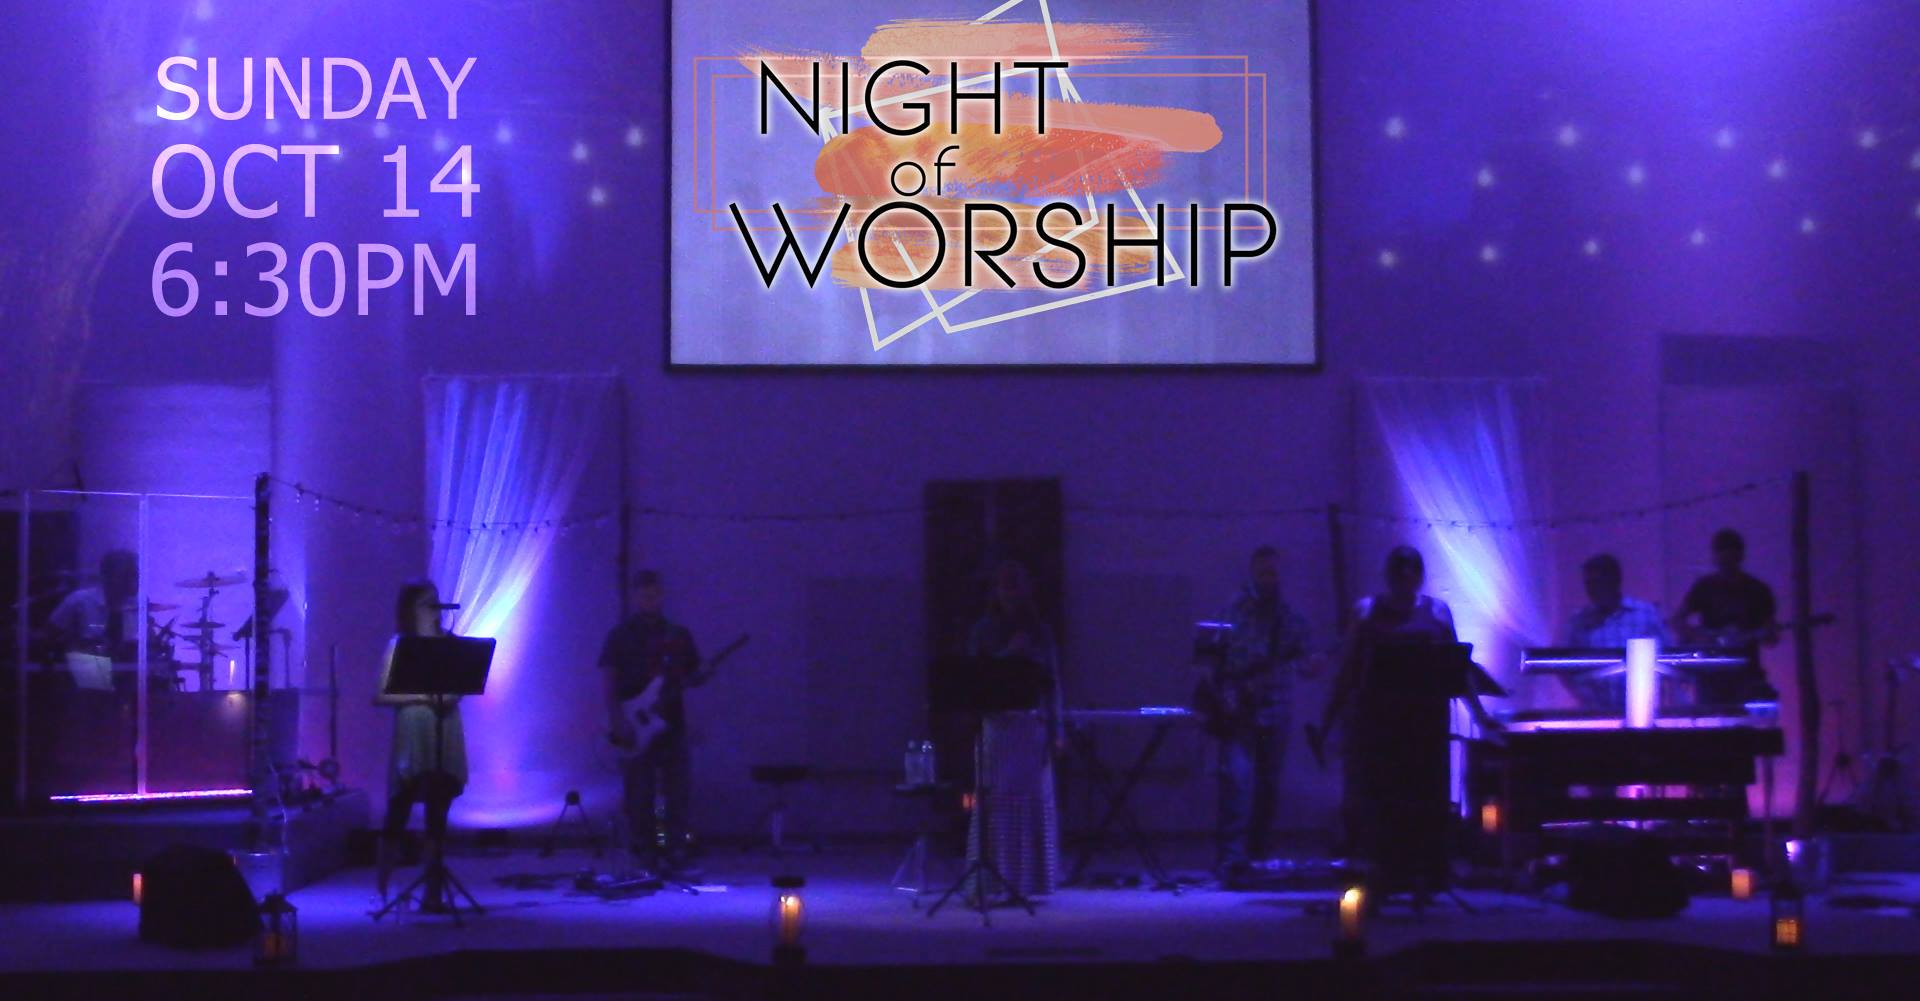 Night of Worship, October 14, 6:30 - 8:30 p.m.